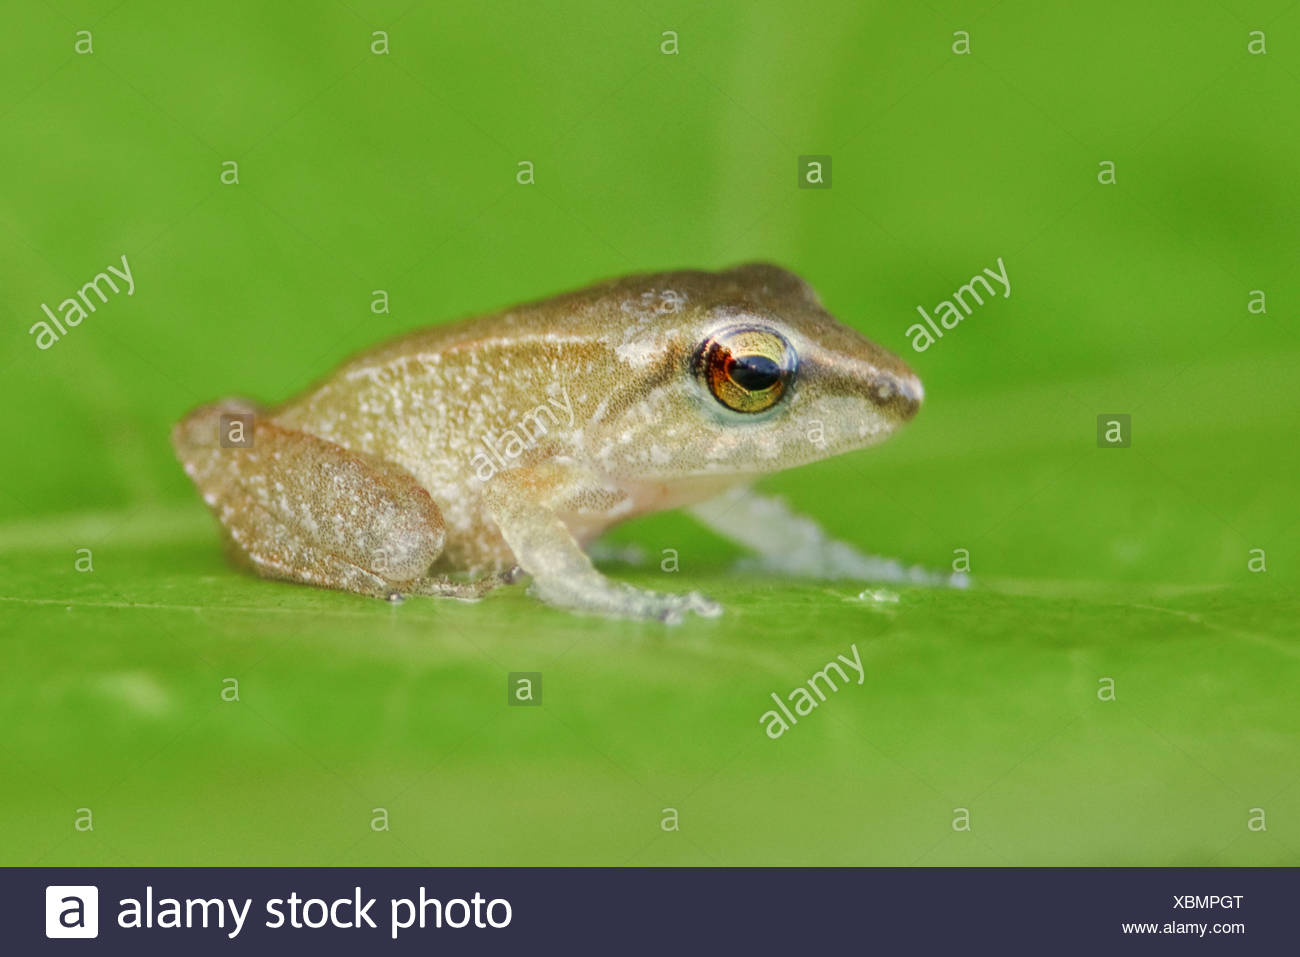 A treefrog perched on a leaf in the Milpe reserve in northwest Ecuador. - Stock Image